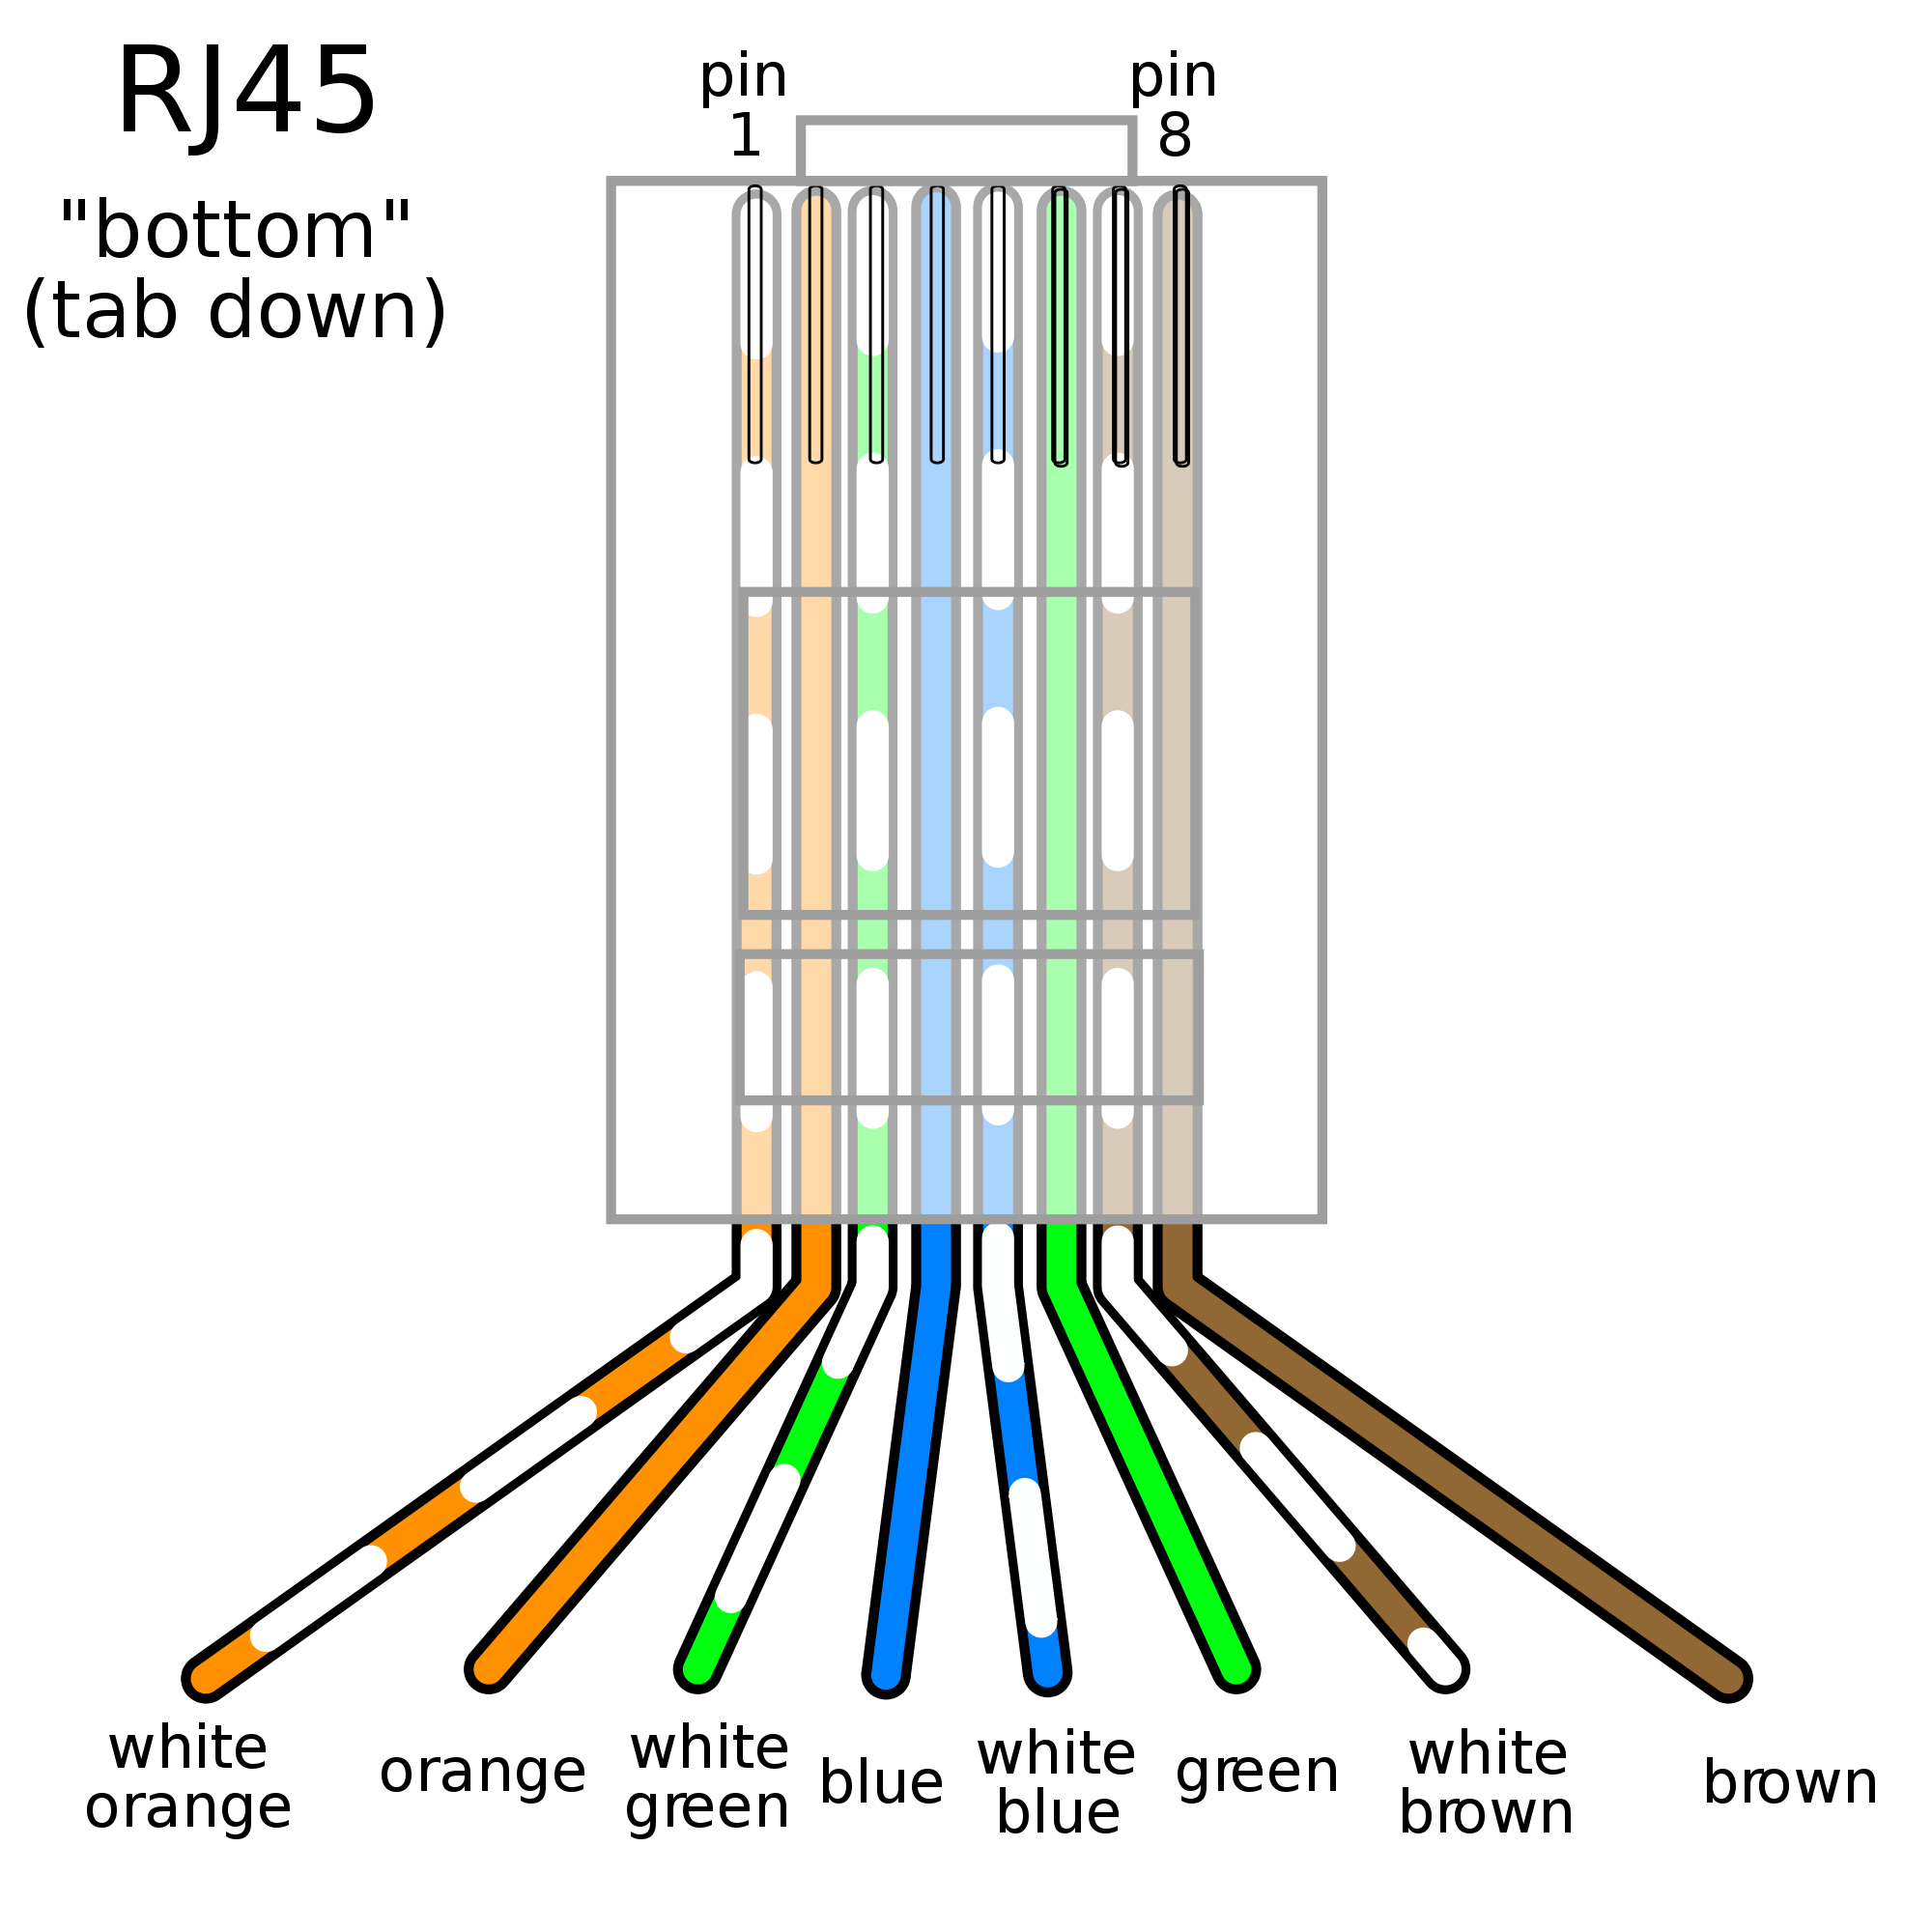 Cable Wiring Diagram Also Cat 6 Wiring Color Code Likewise Ether Cable